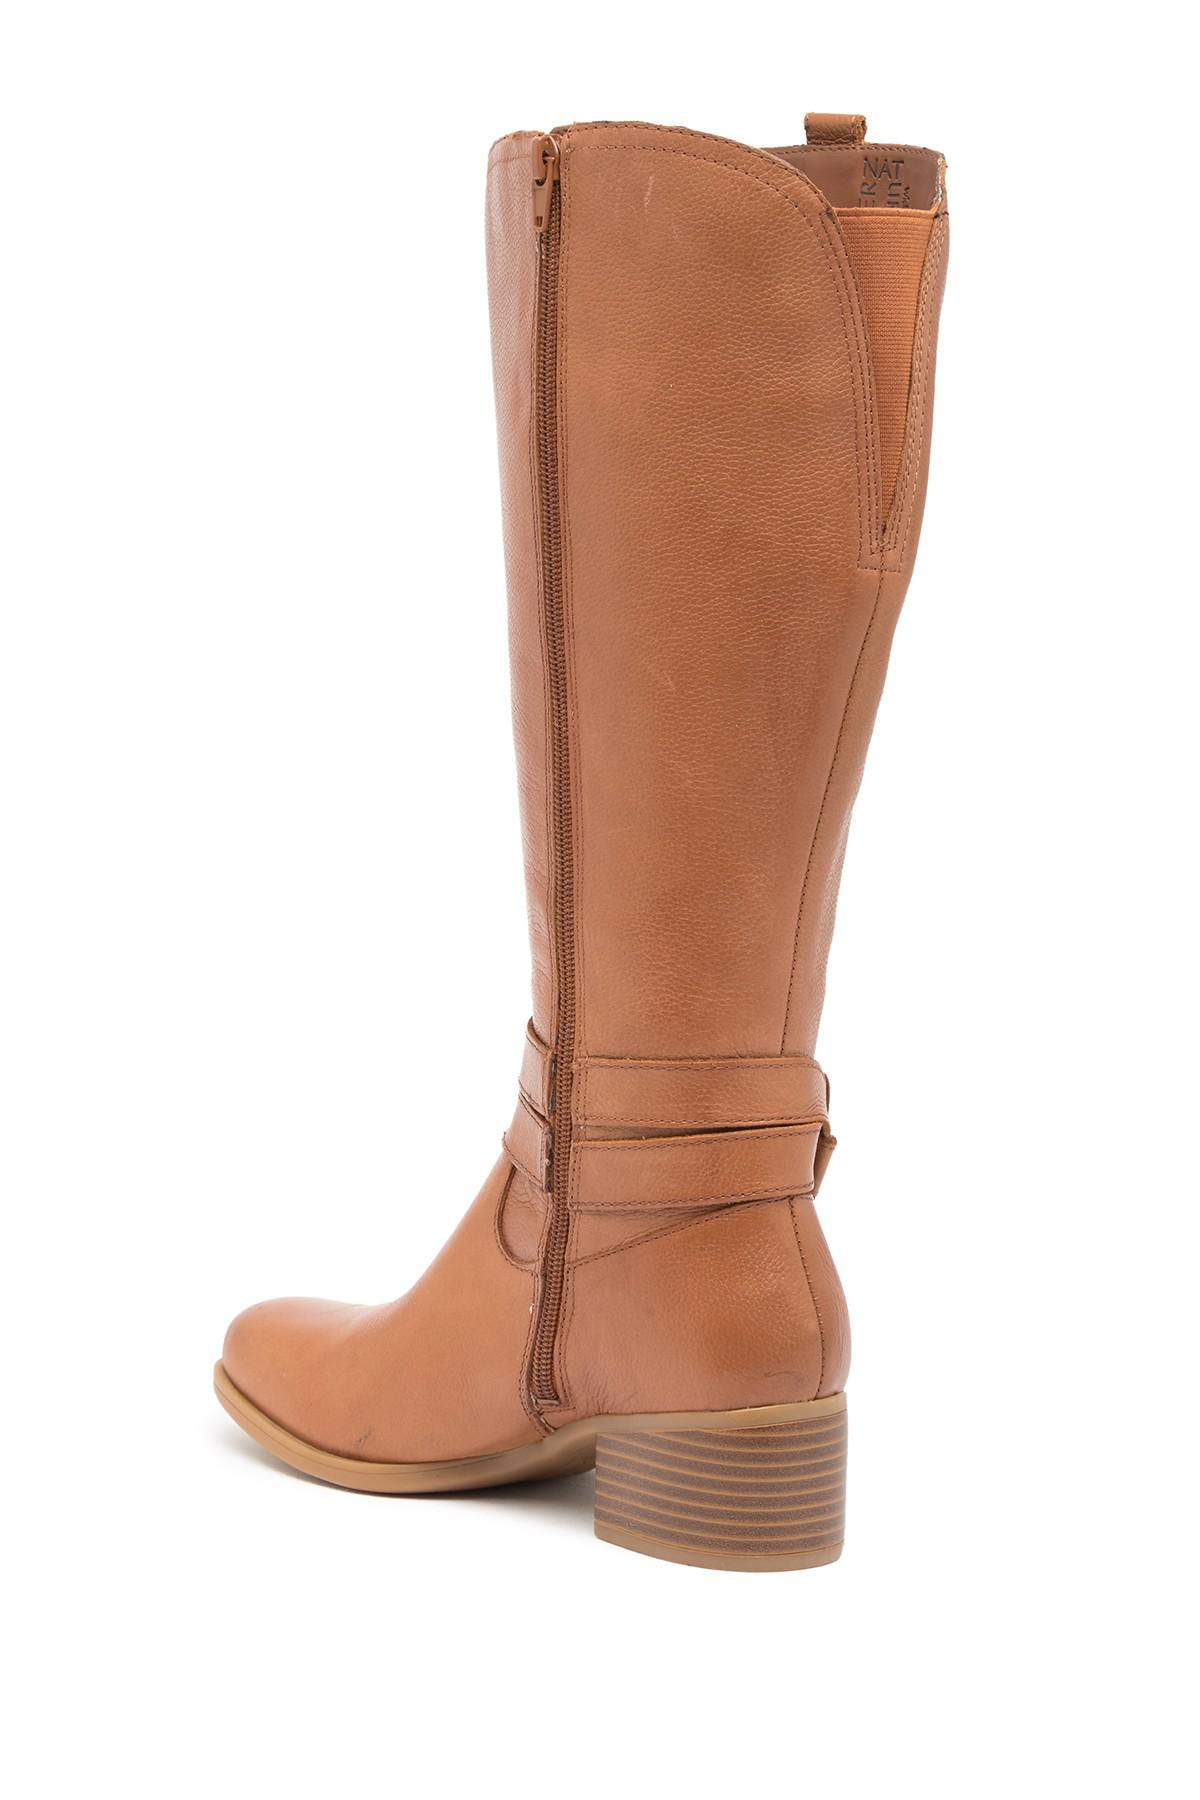 9724f41207b Naturalizer - Brown Kim Ankle Strap Leather Boot - Wide Width Available -  Lyst. View fullscreen